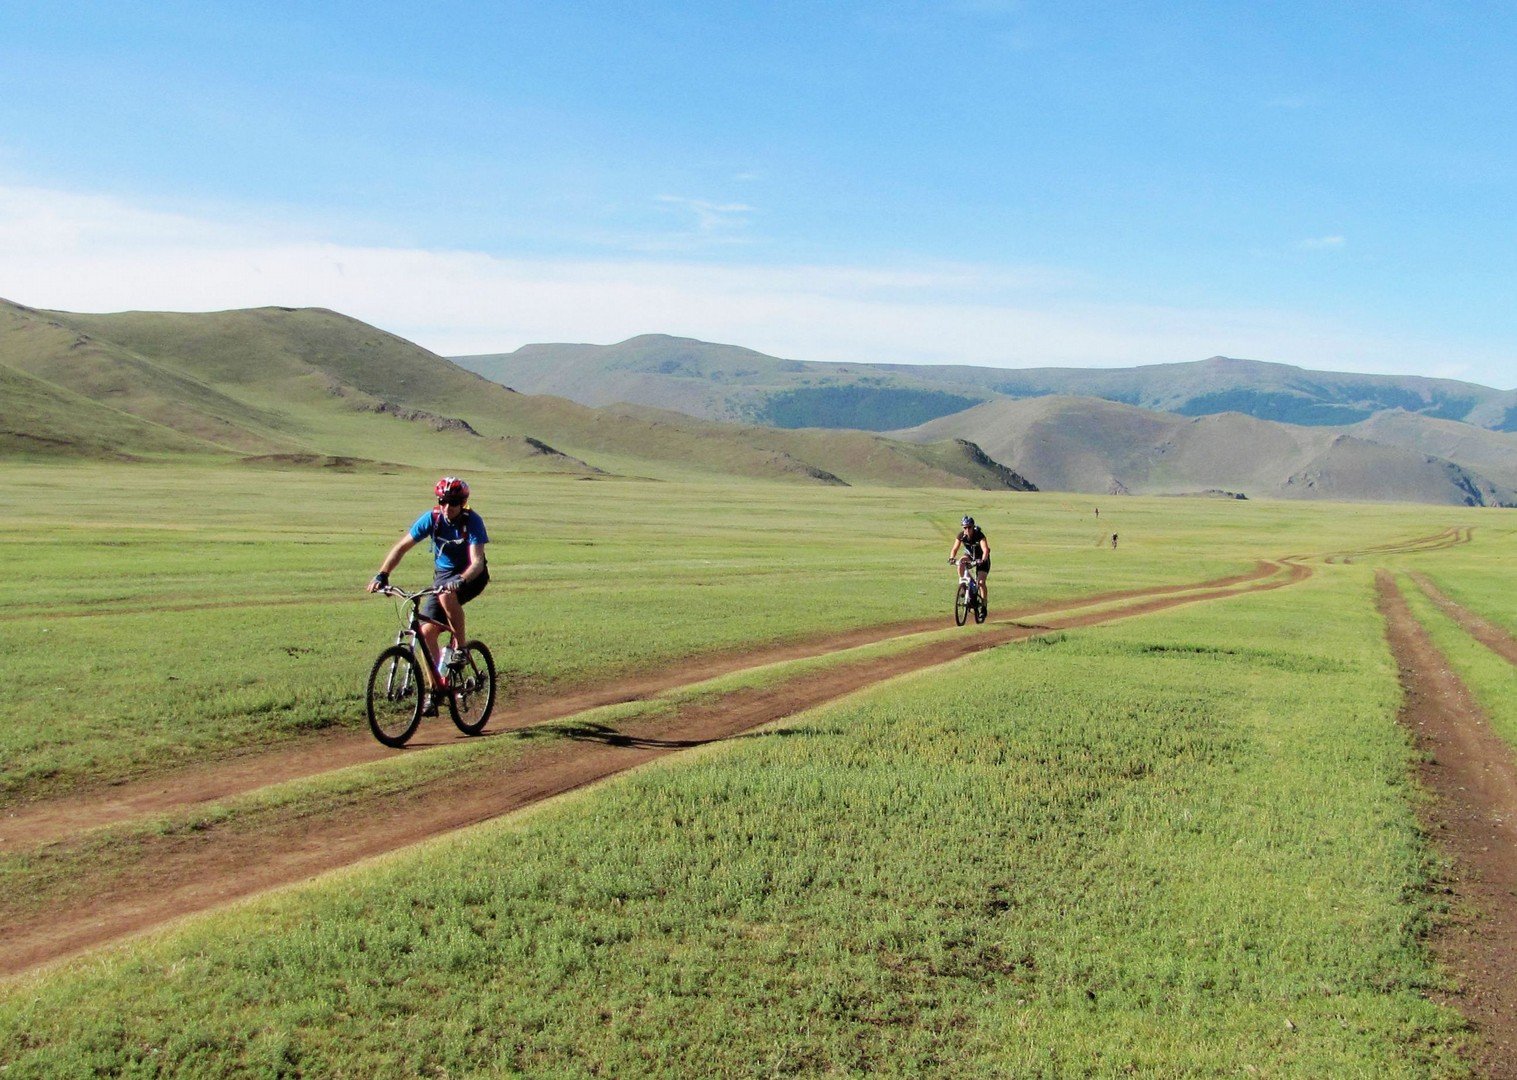 mongolia-bike-holiday-cycling-holiday-in-mongolia.jpg - NEW! Mongolia - Route of the Nomads - Cycling Adventures